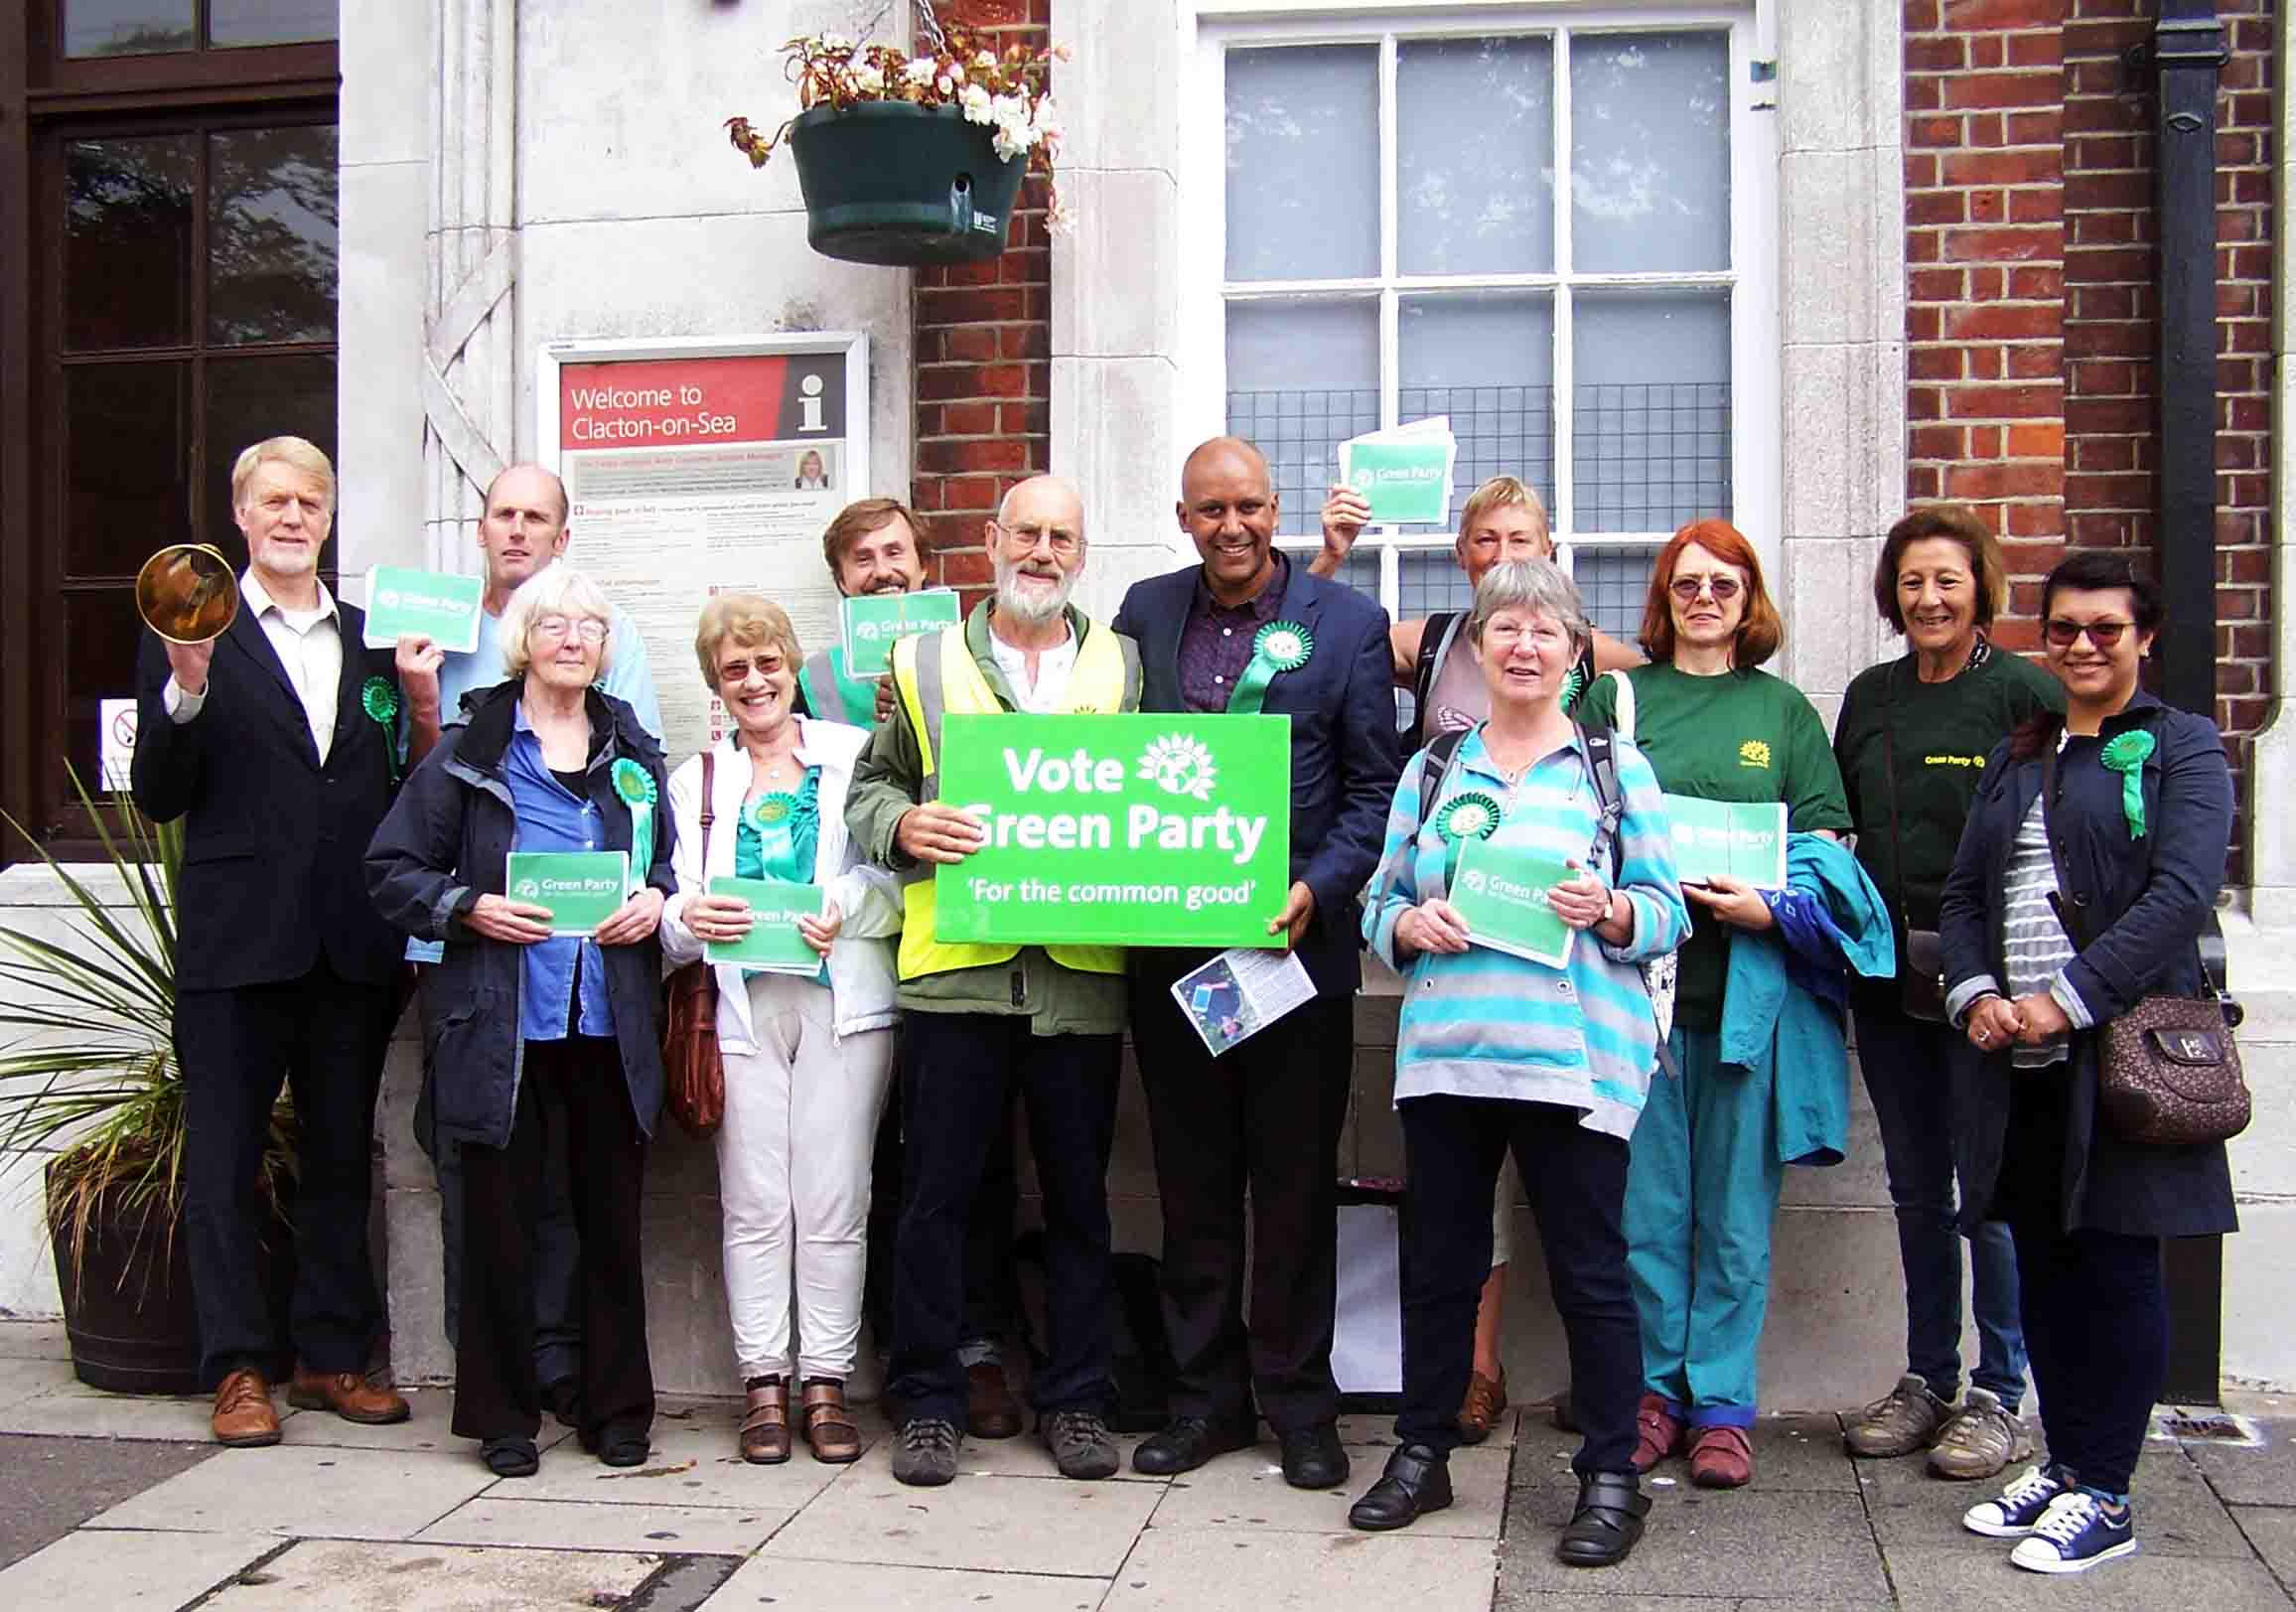 Tendring Green party campaign in Clacton with party Deputy Leader Shahrar Ali